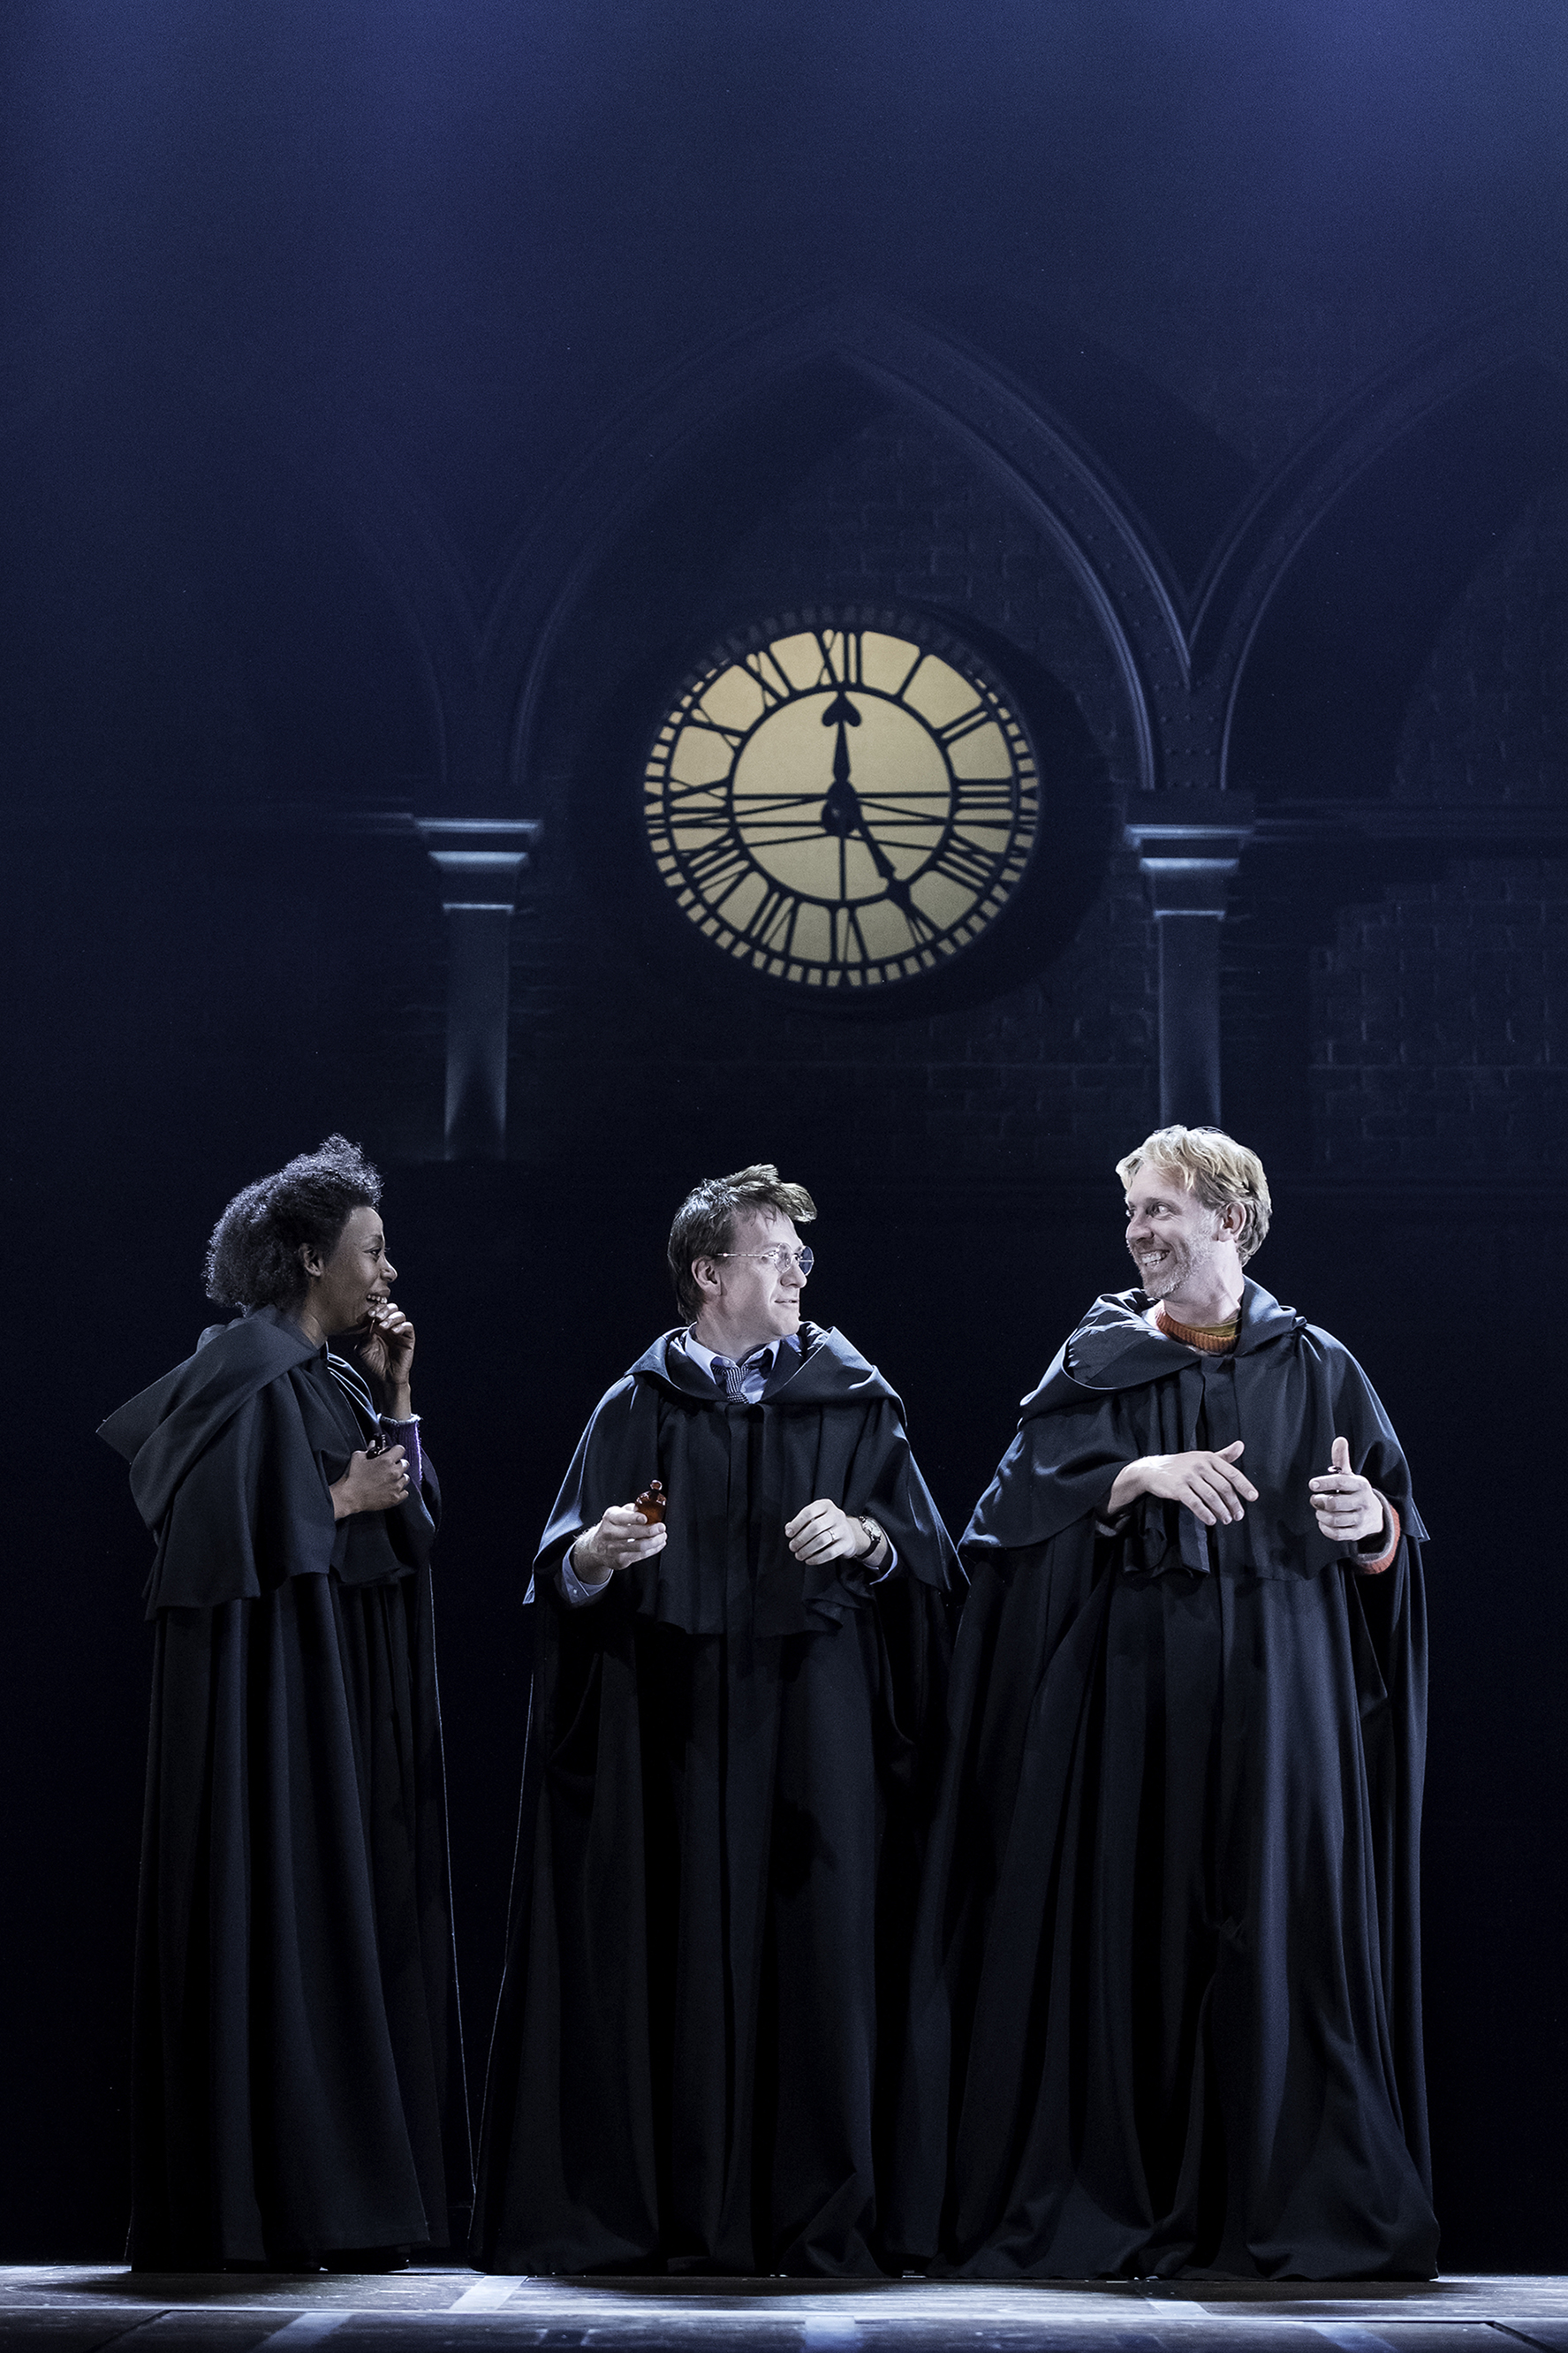 Harry potter and the cursed child pottermore cursed child wins best play at the tony awards 2018 fandeluxe Choice Image